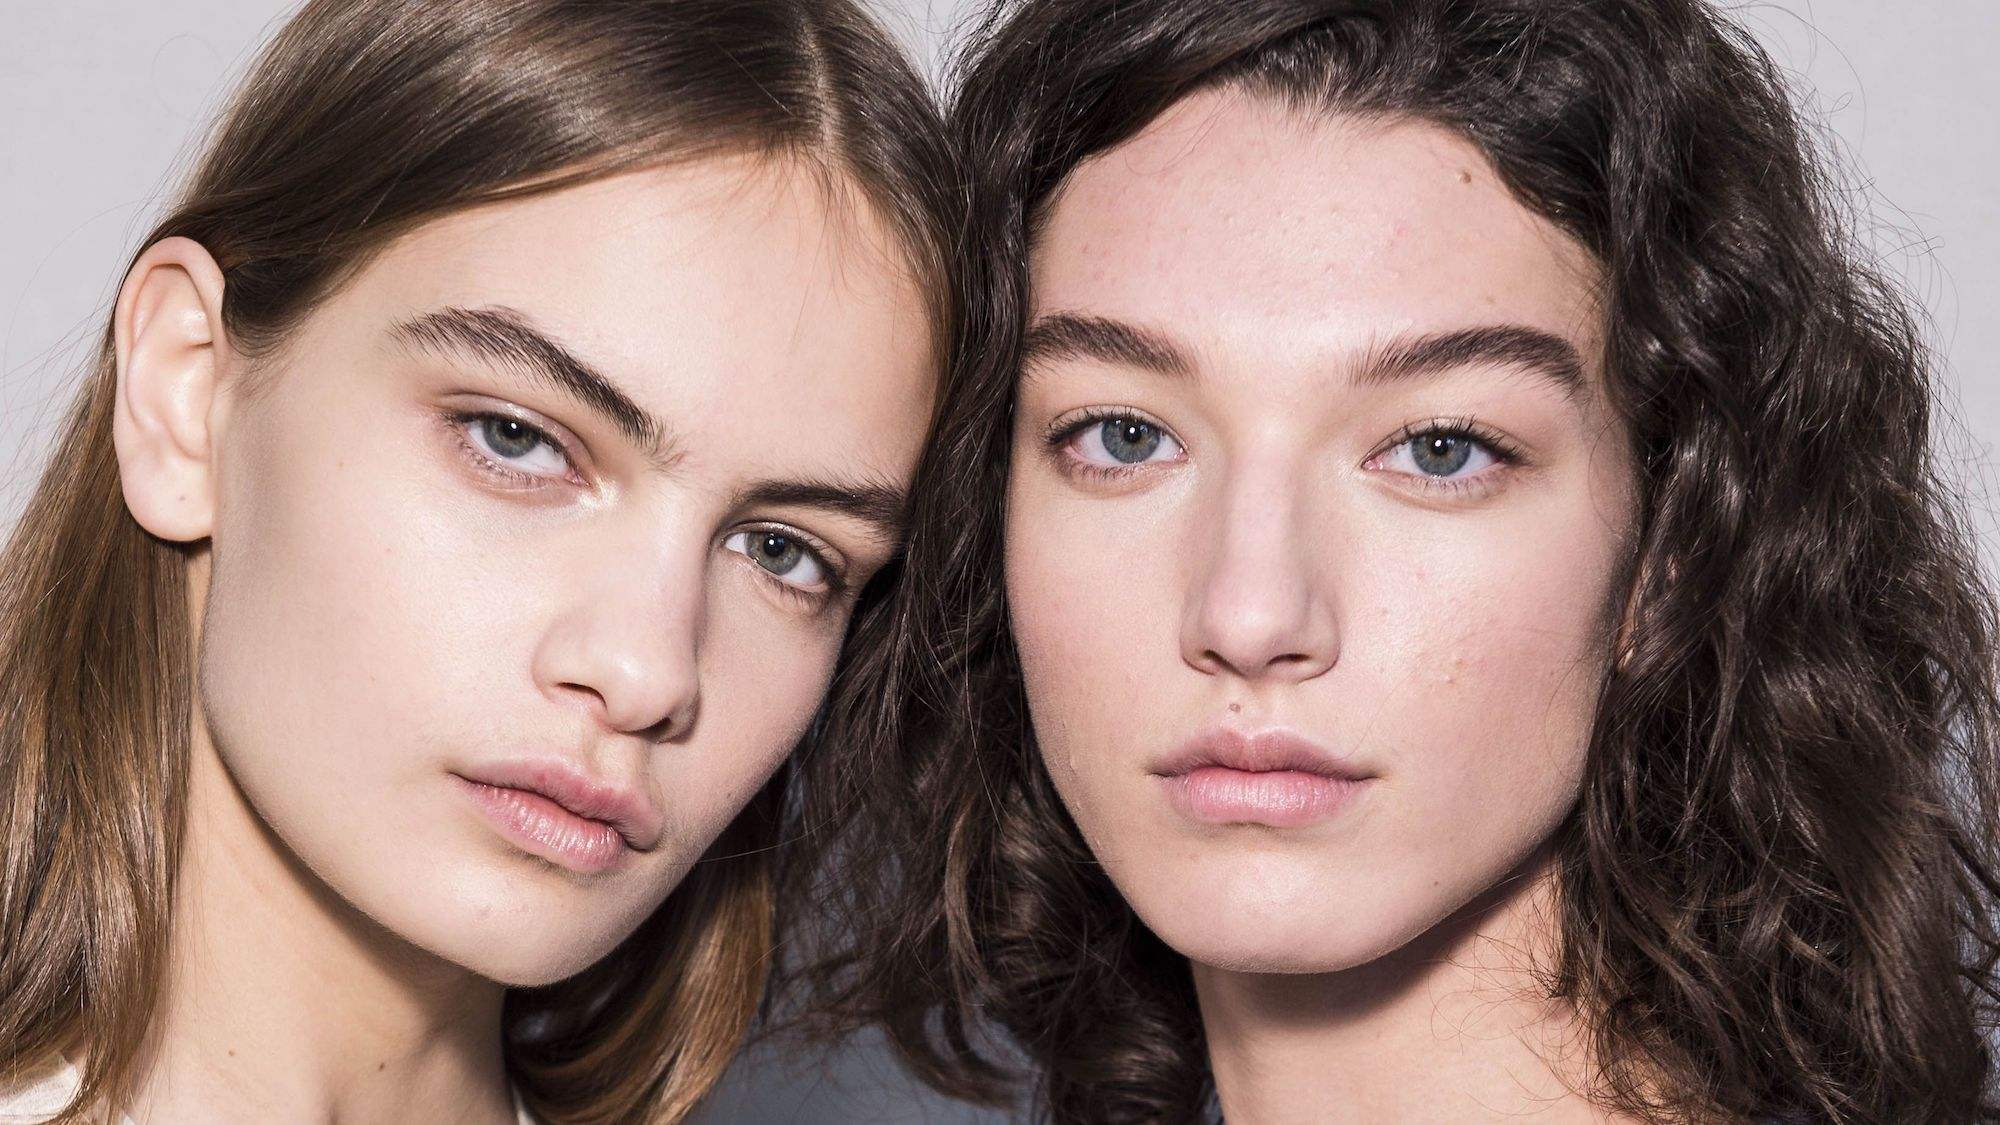 Microblading Eyebrows: What You Need To Know Before The